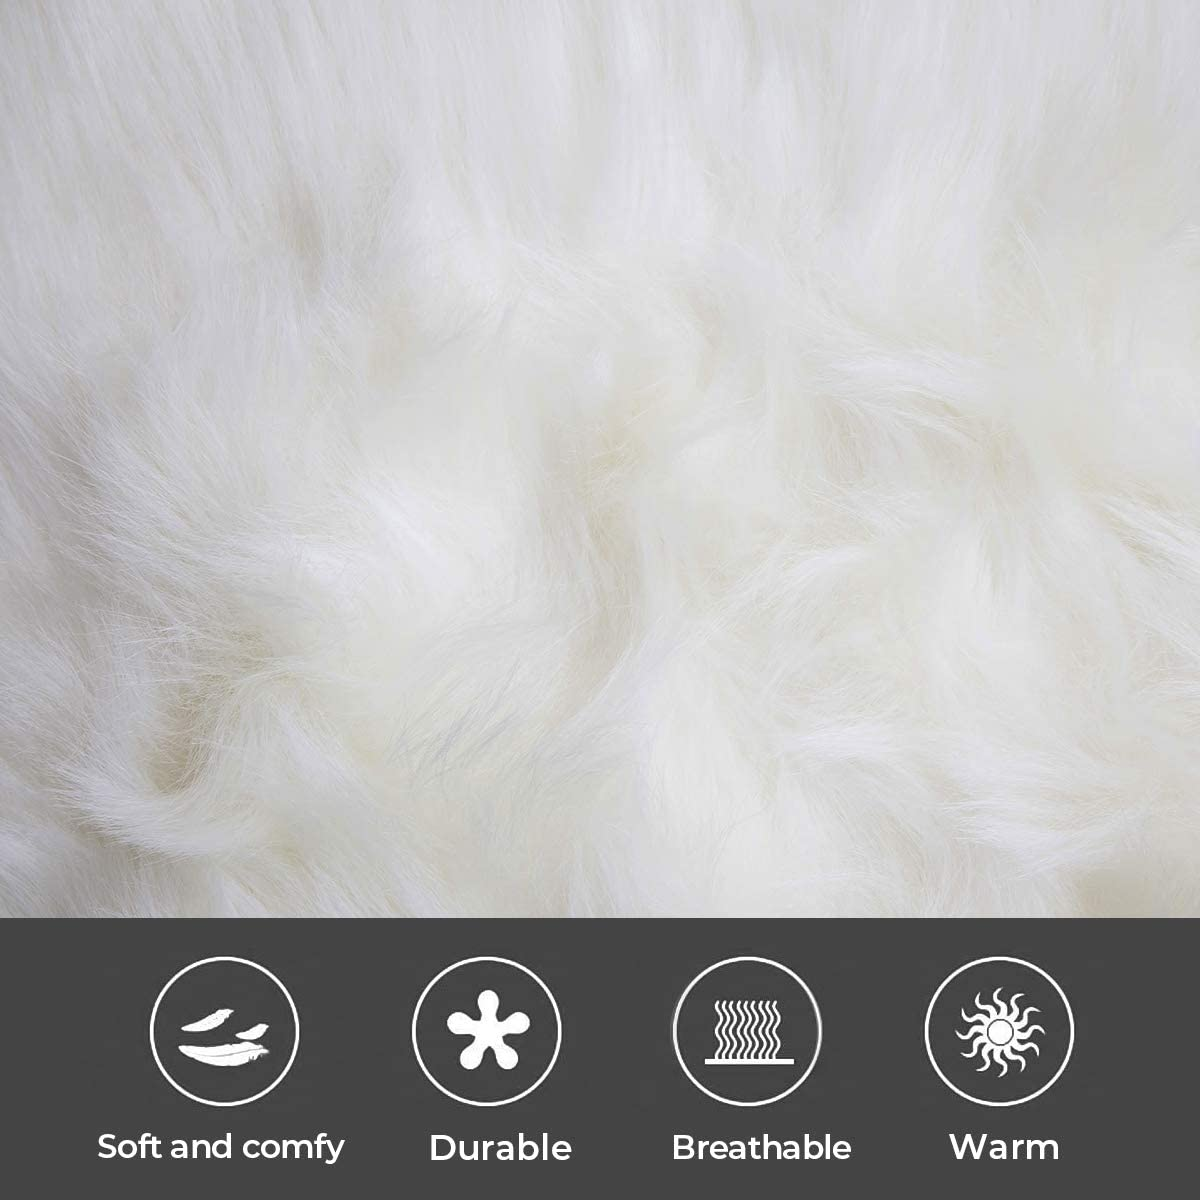 HYSEAS Faux Sheepskin Fur Area Rug White, 3×5 Feet Rectangle, Fluffy Soft Fuzzy Plush Shaggy Carpet Throw Rug for Indoor Floor, Sofa, Chair, Bedroom, Living Room, Home Decoration